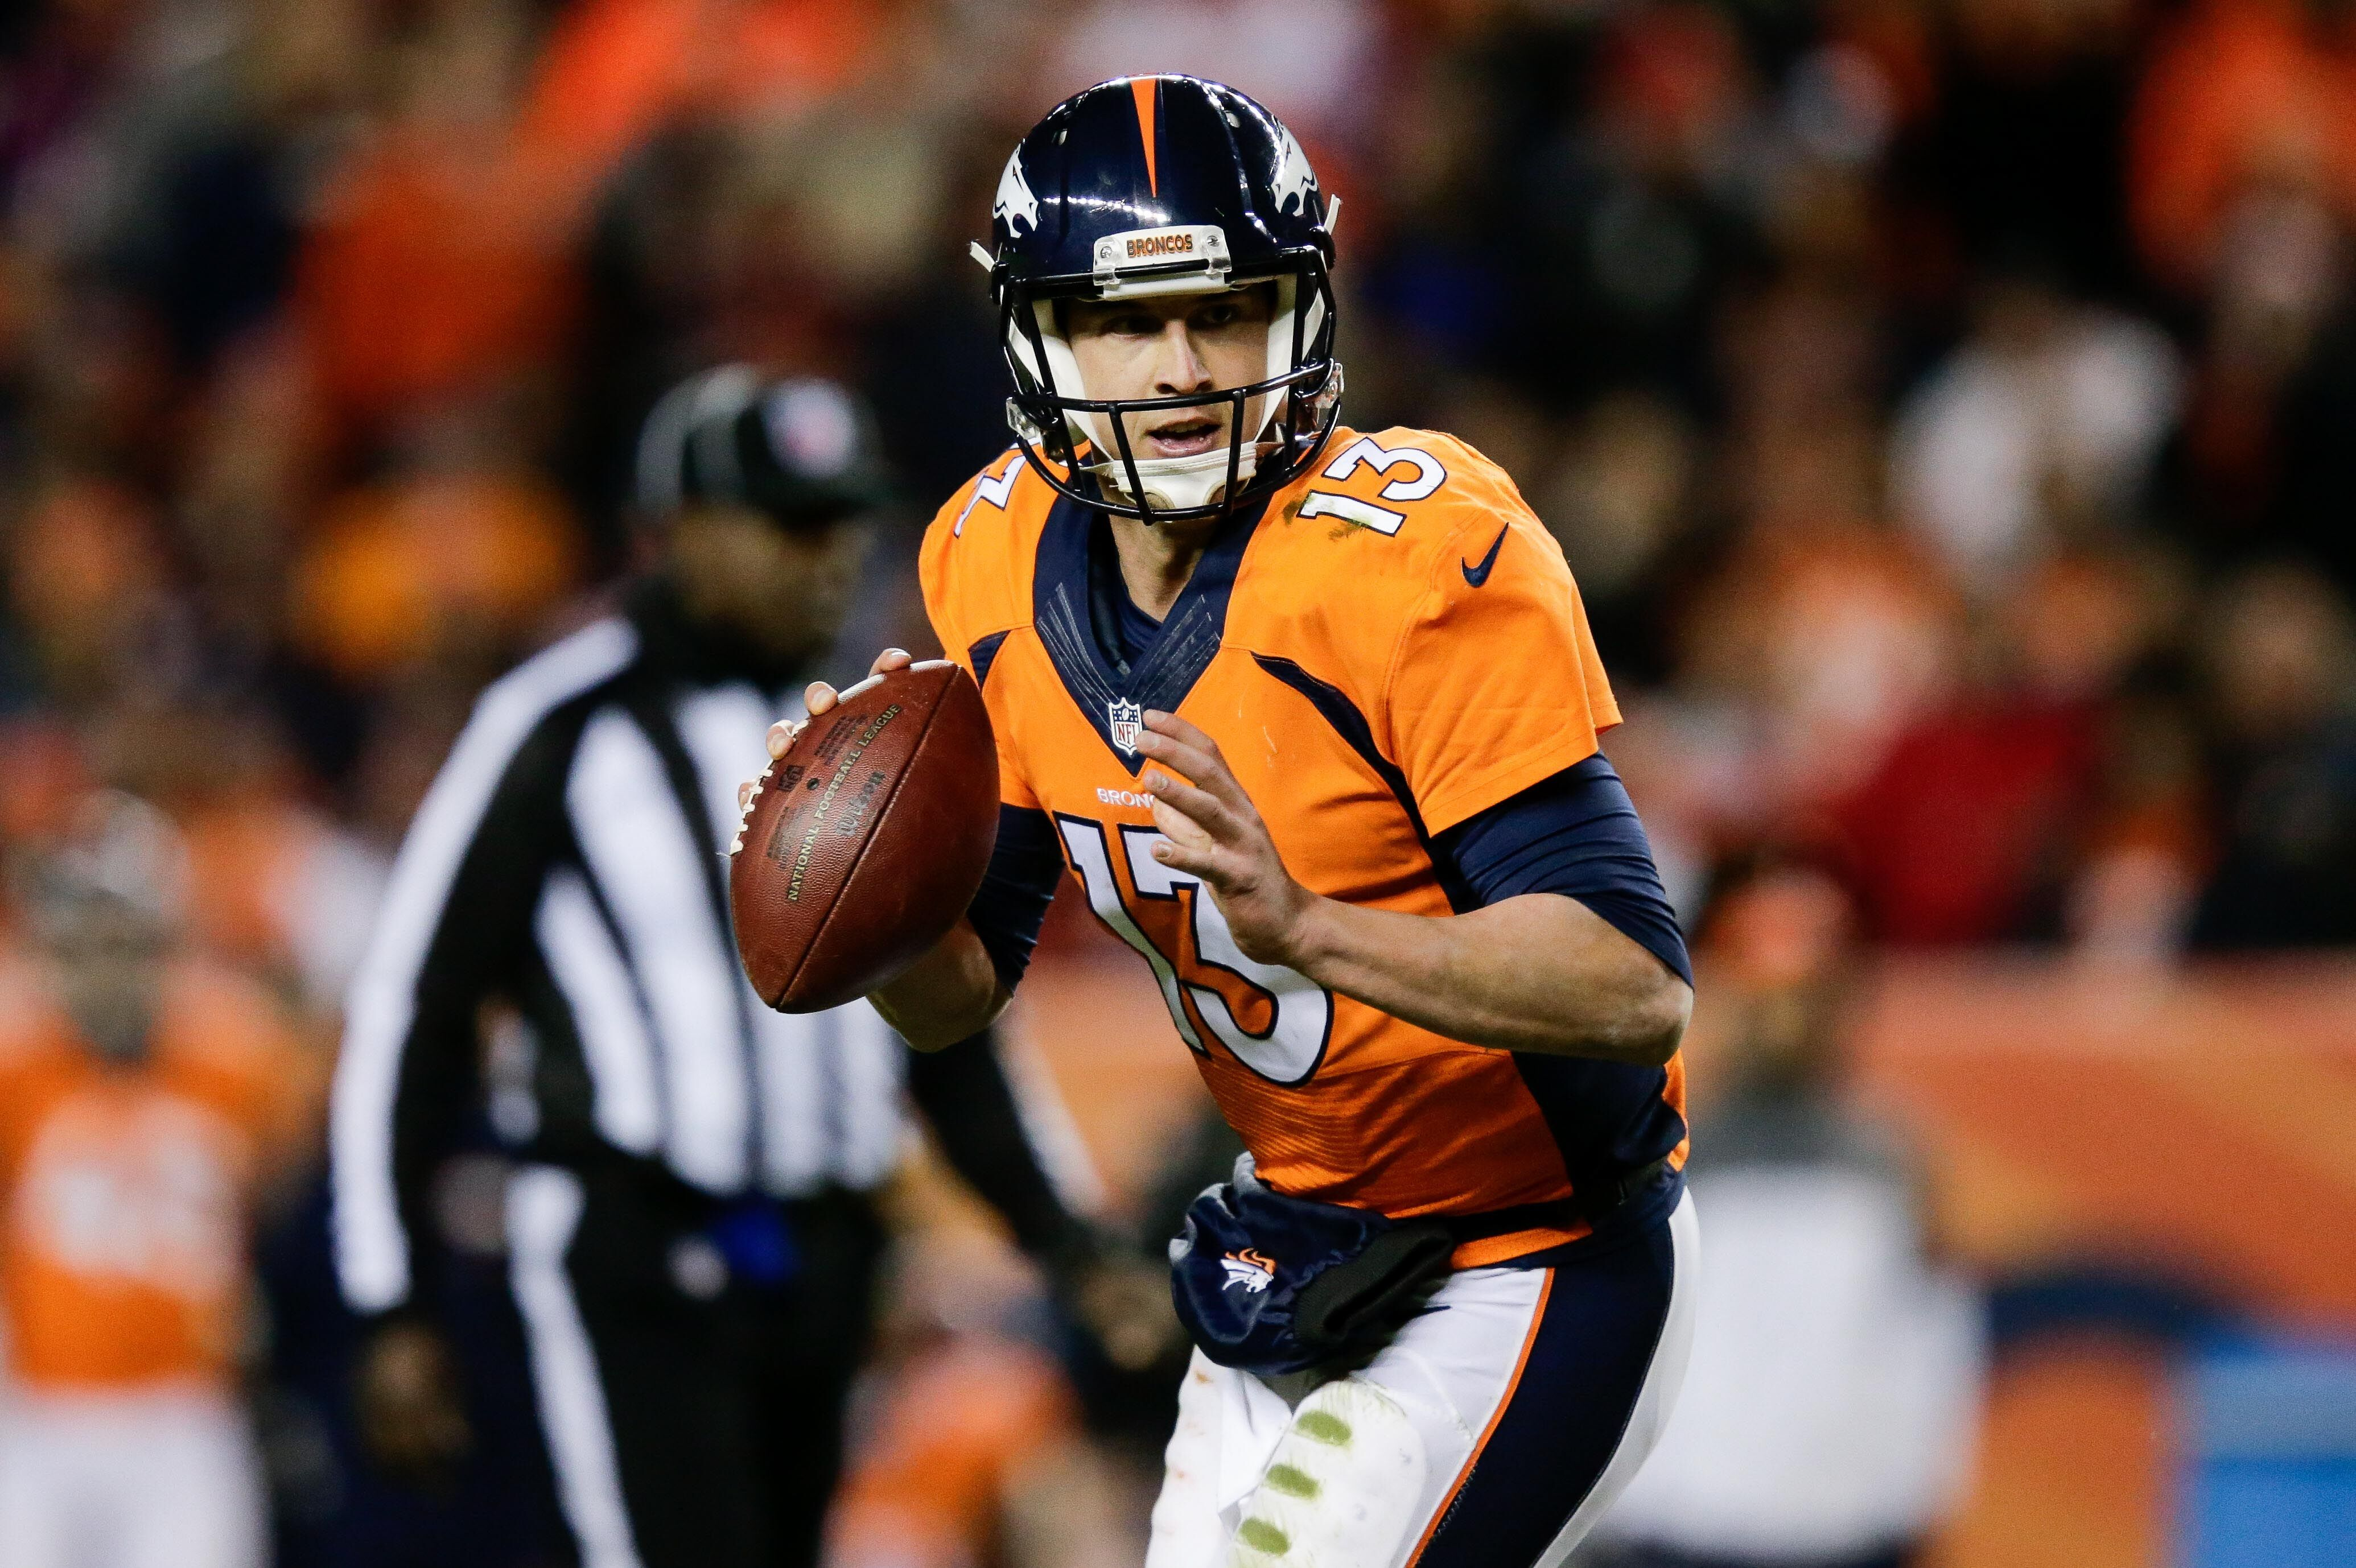 The 2014 Denver Broncos season was the franchises 45th season in the National Football League and the 55th overall It also marked the third season with Peyton